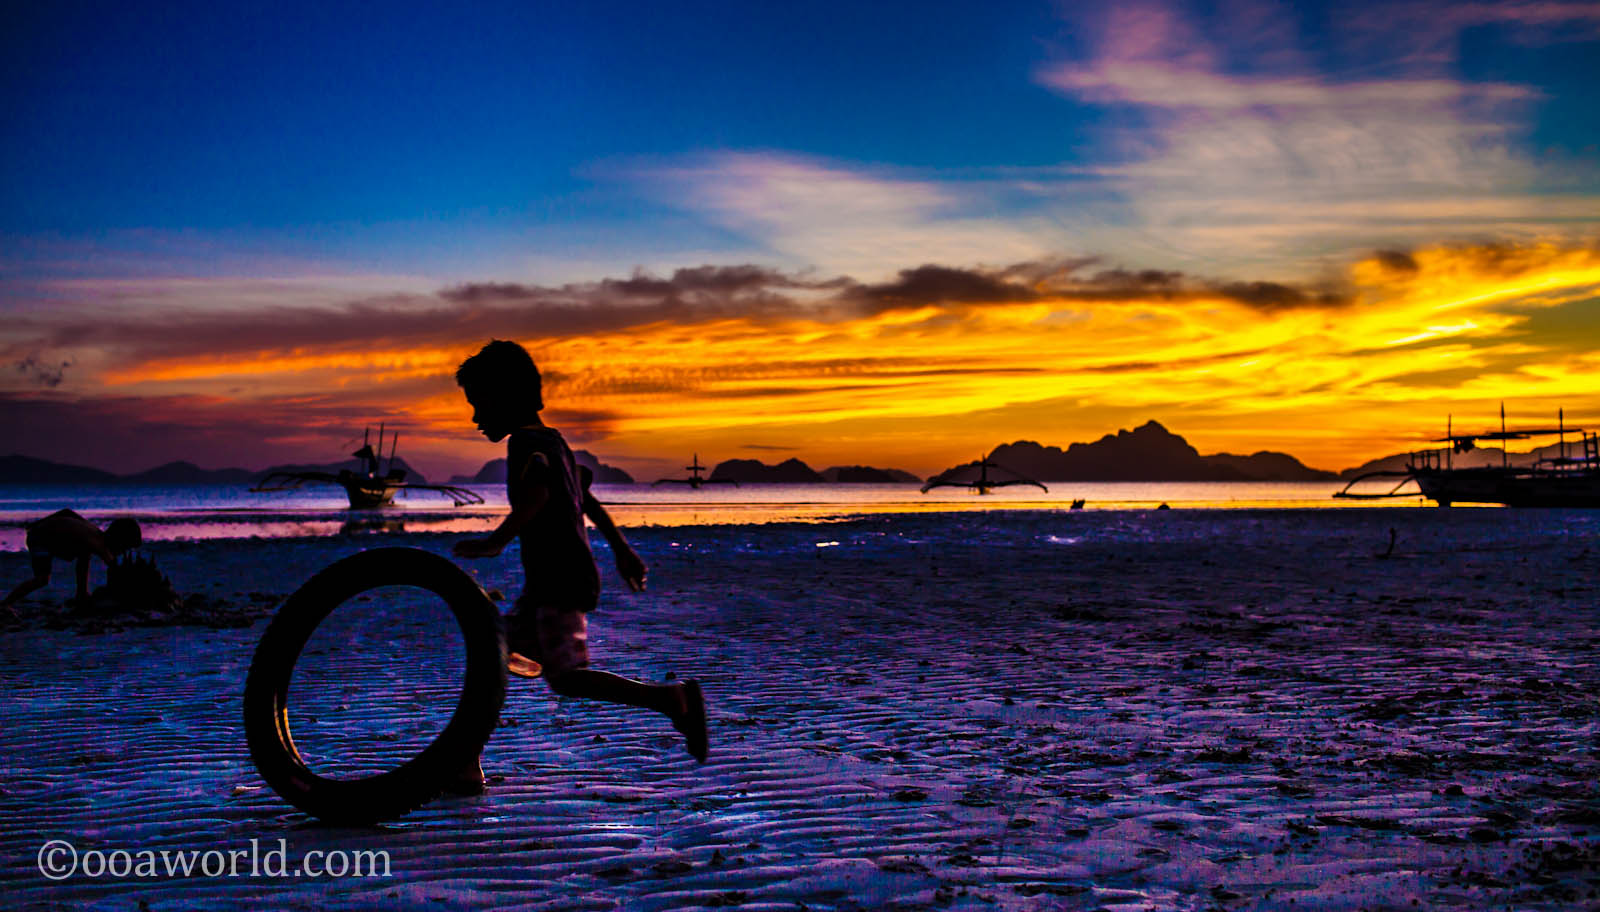 El nido palawan sunset photos philippines ooaworld for Wallpaper home philippines